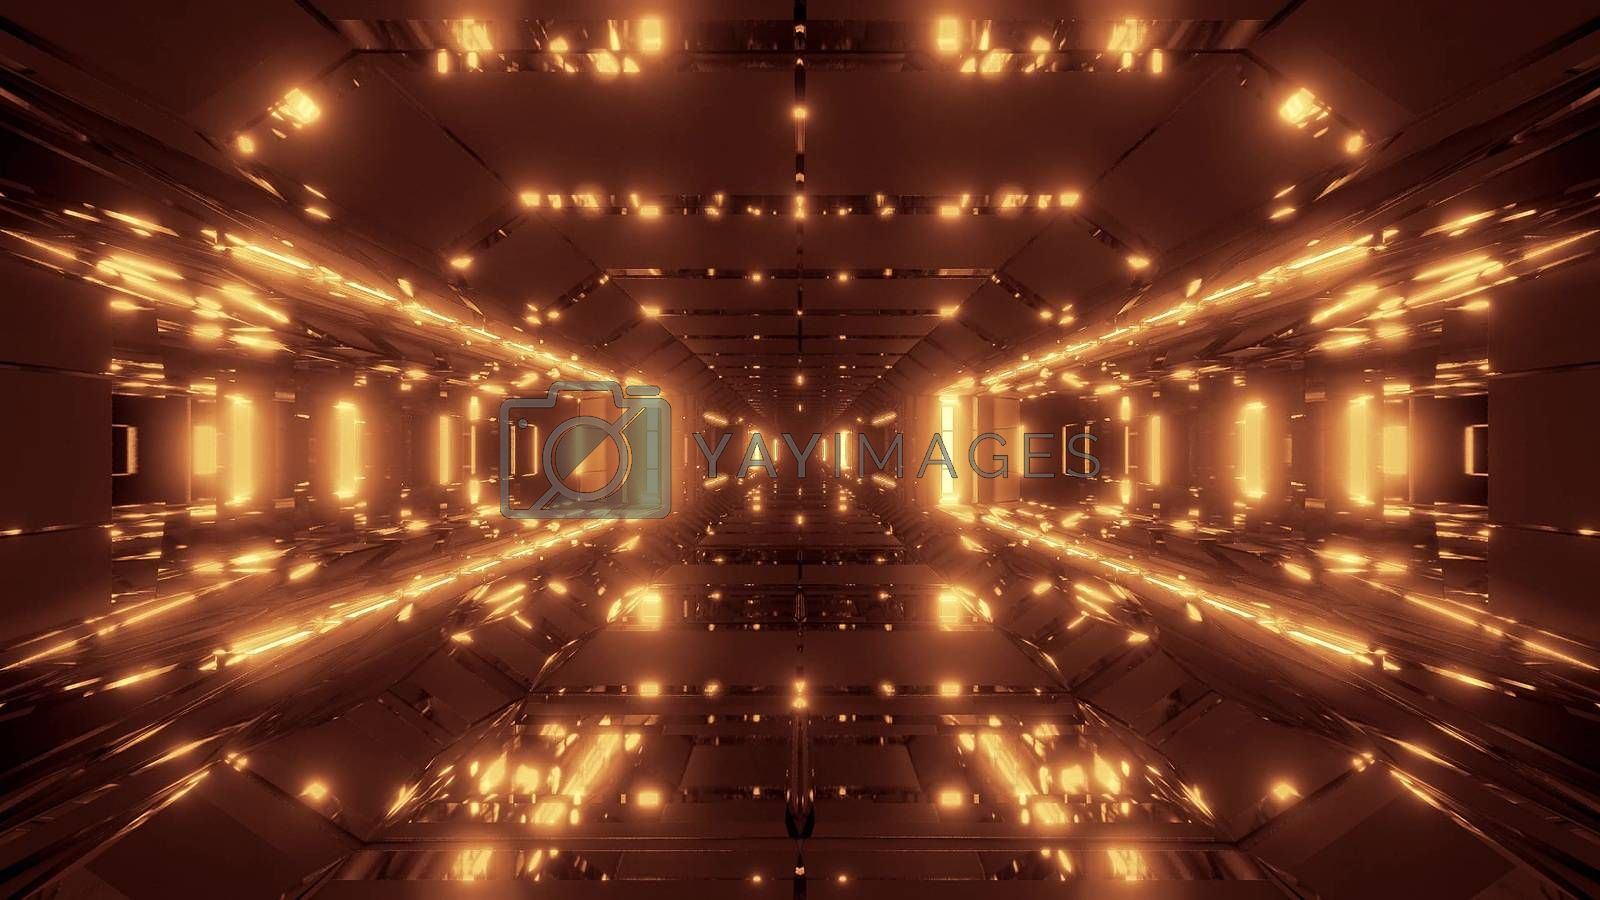 Royalty free image of futuristic sci-fi space hangar with nice glowing lights 3d illustration wallpaper background by tunnelmotions